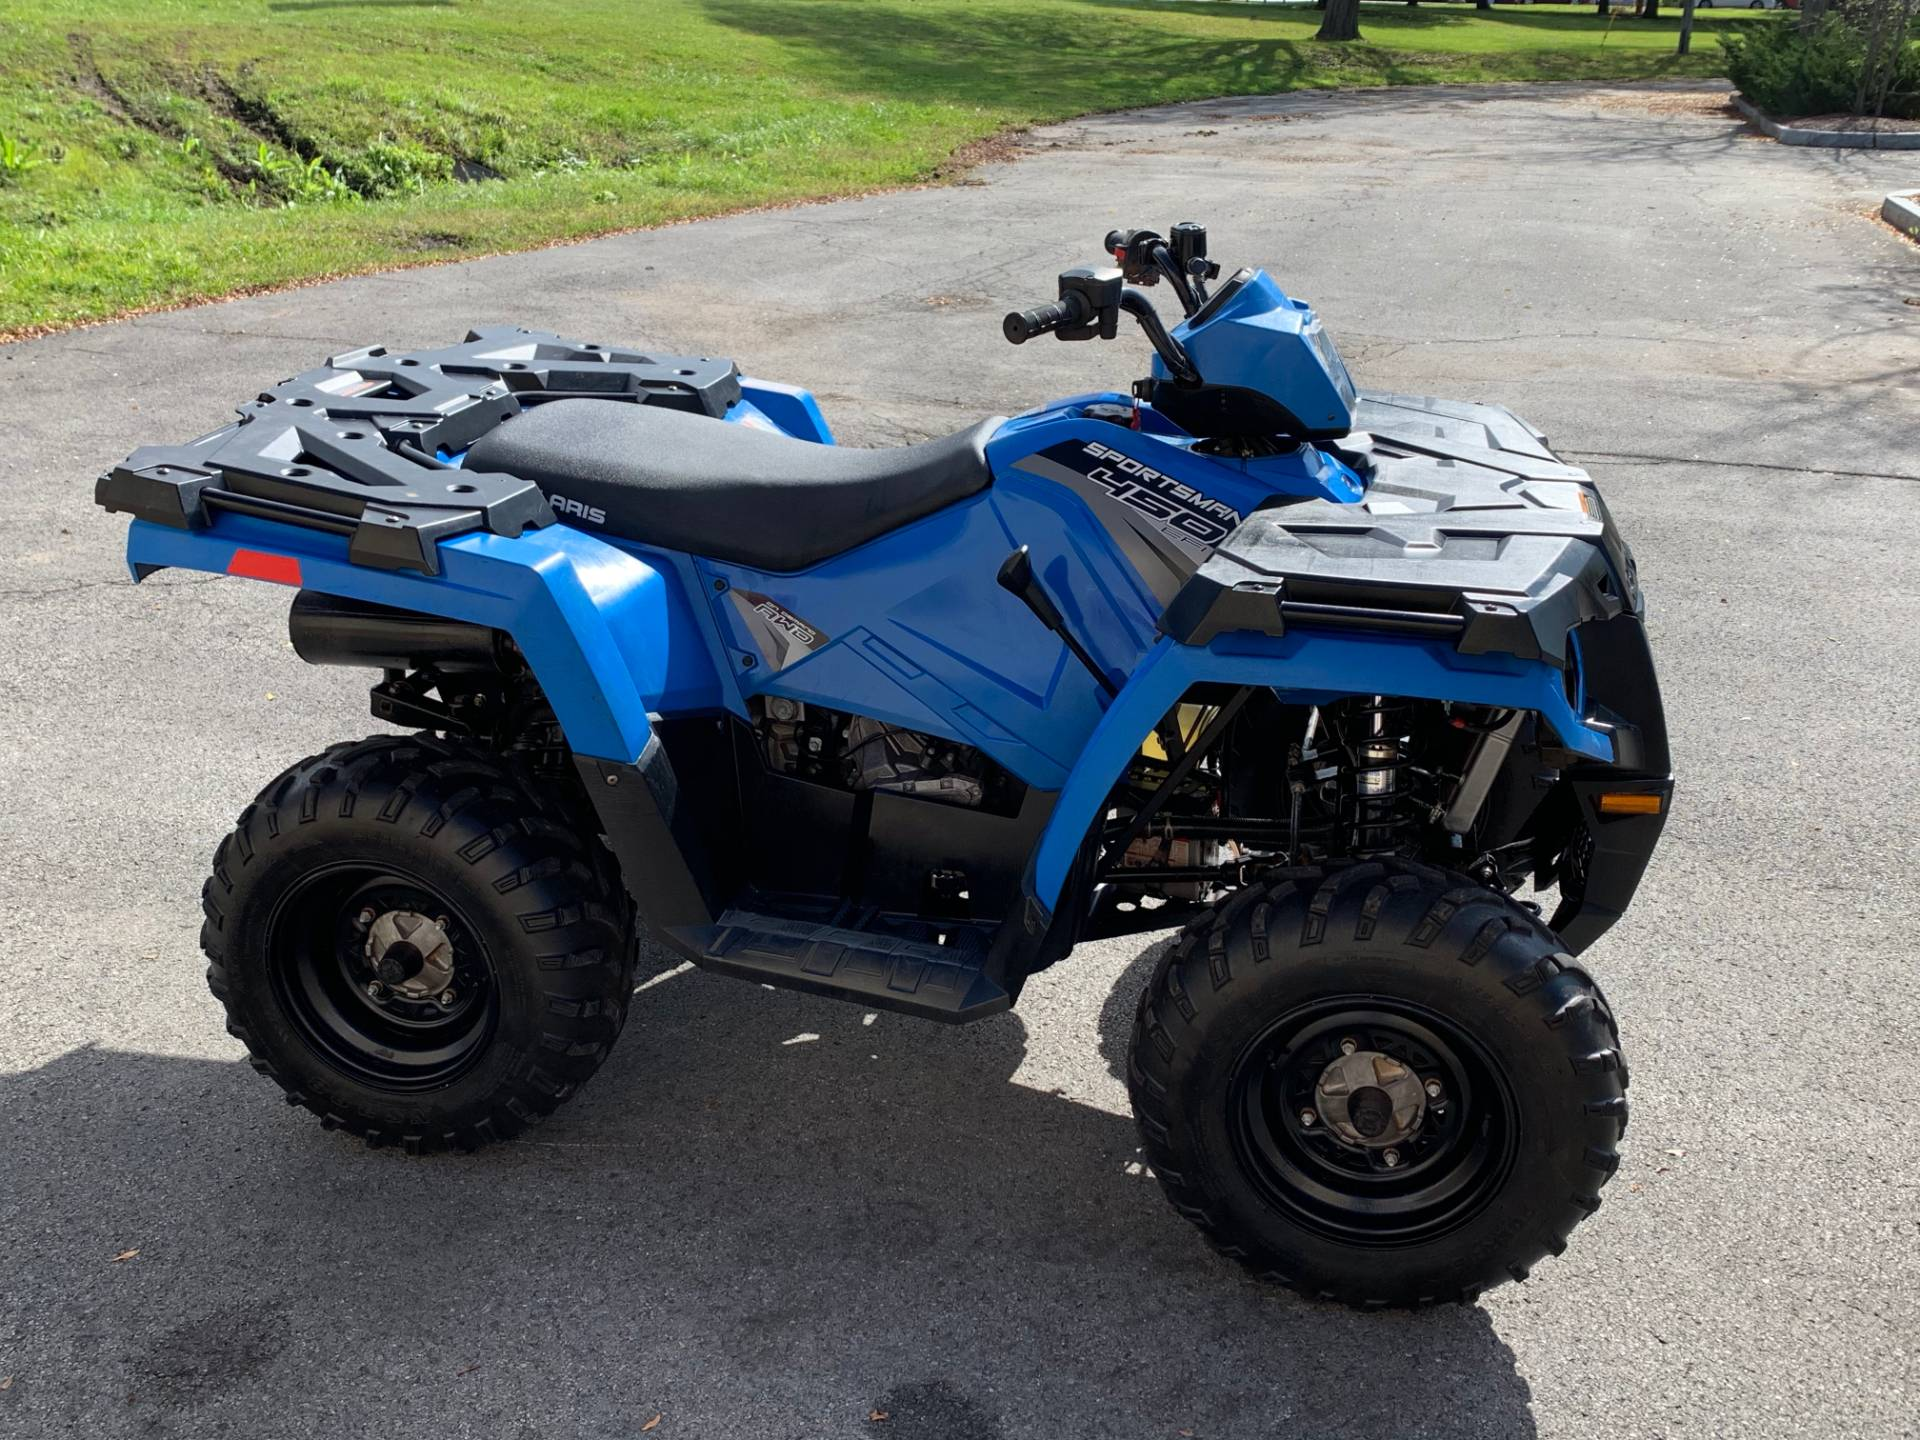 2017 Polaris Sportsman 450 H.O. in Herkimer, New York - Photo 6